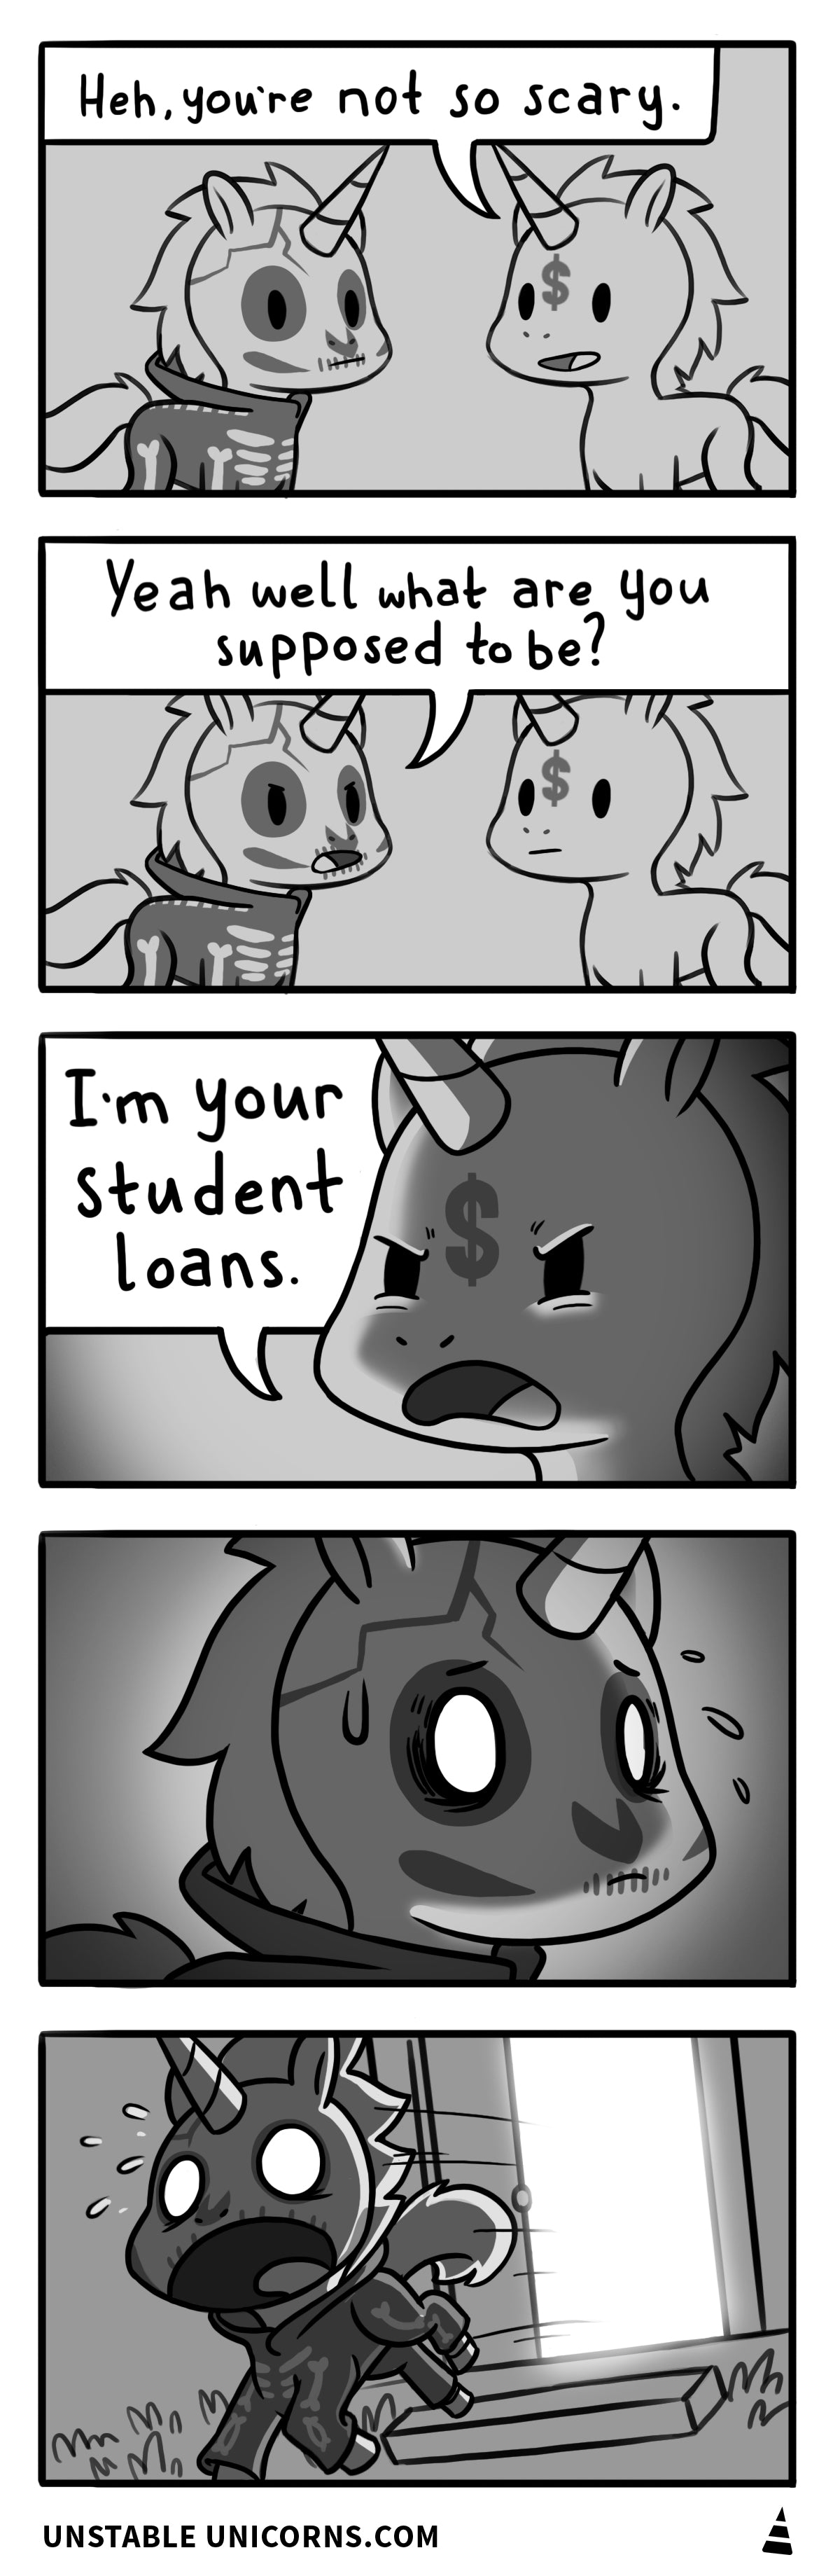 Student loans are scary.